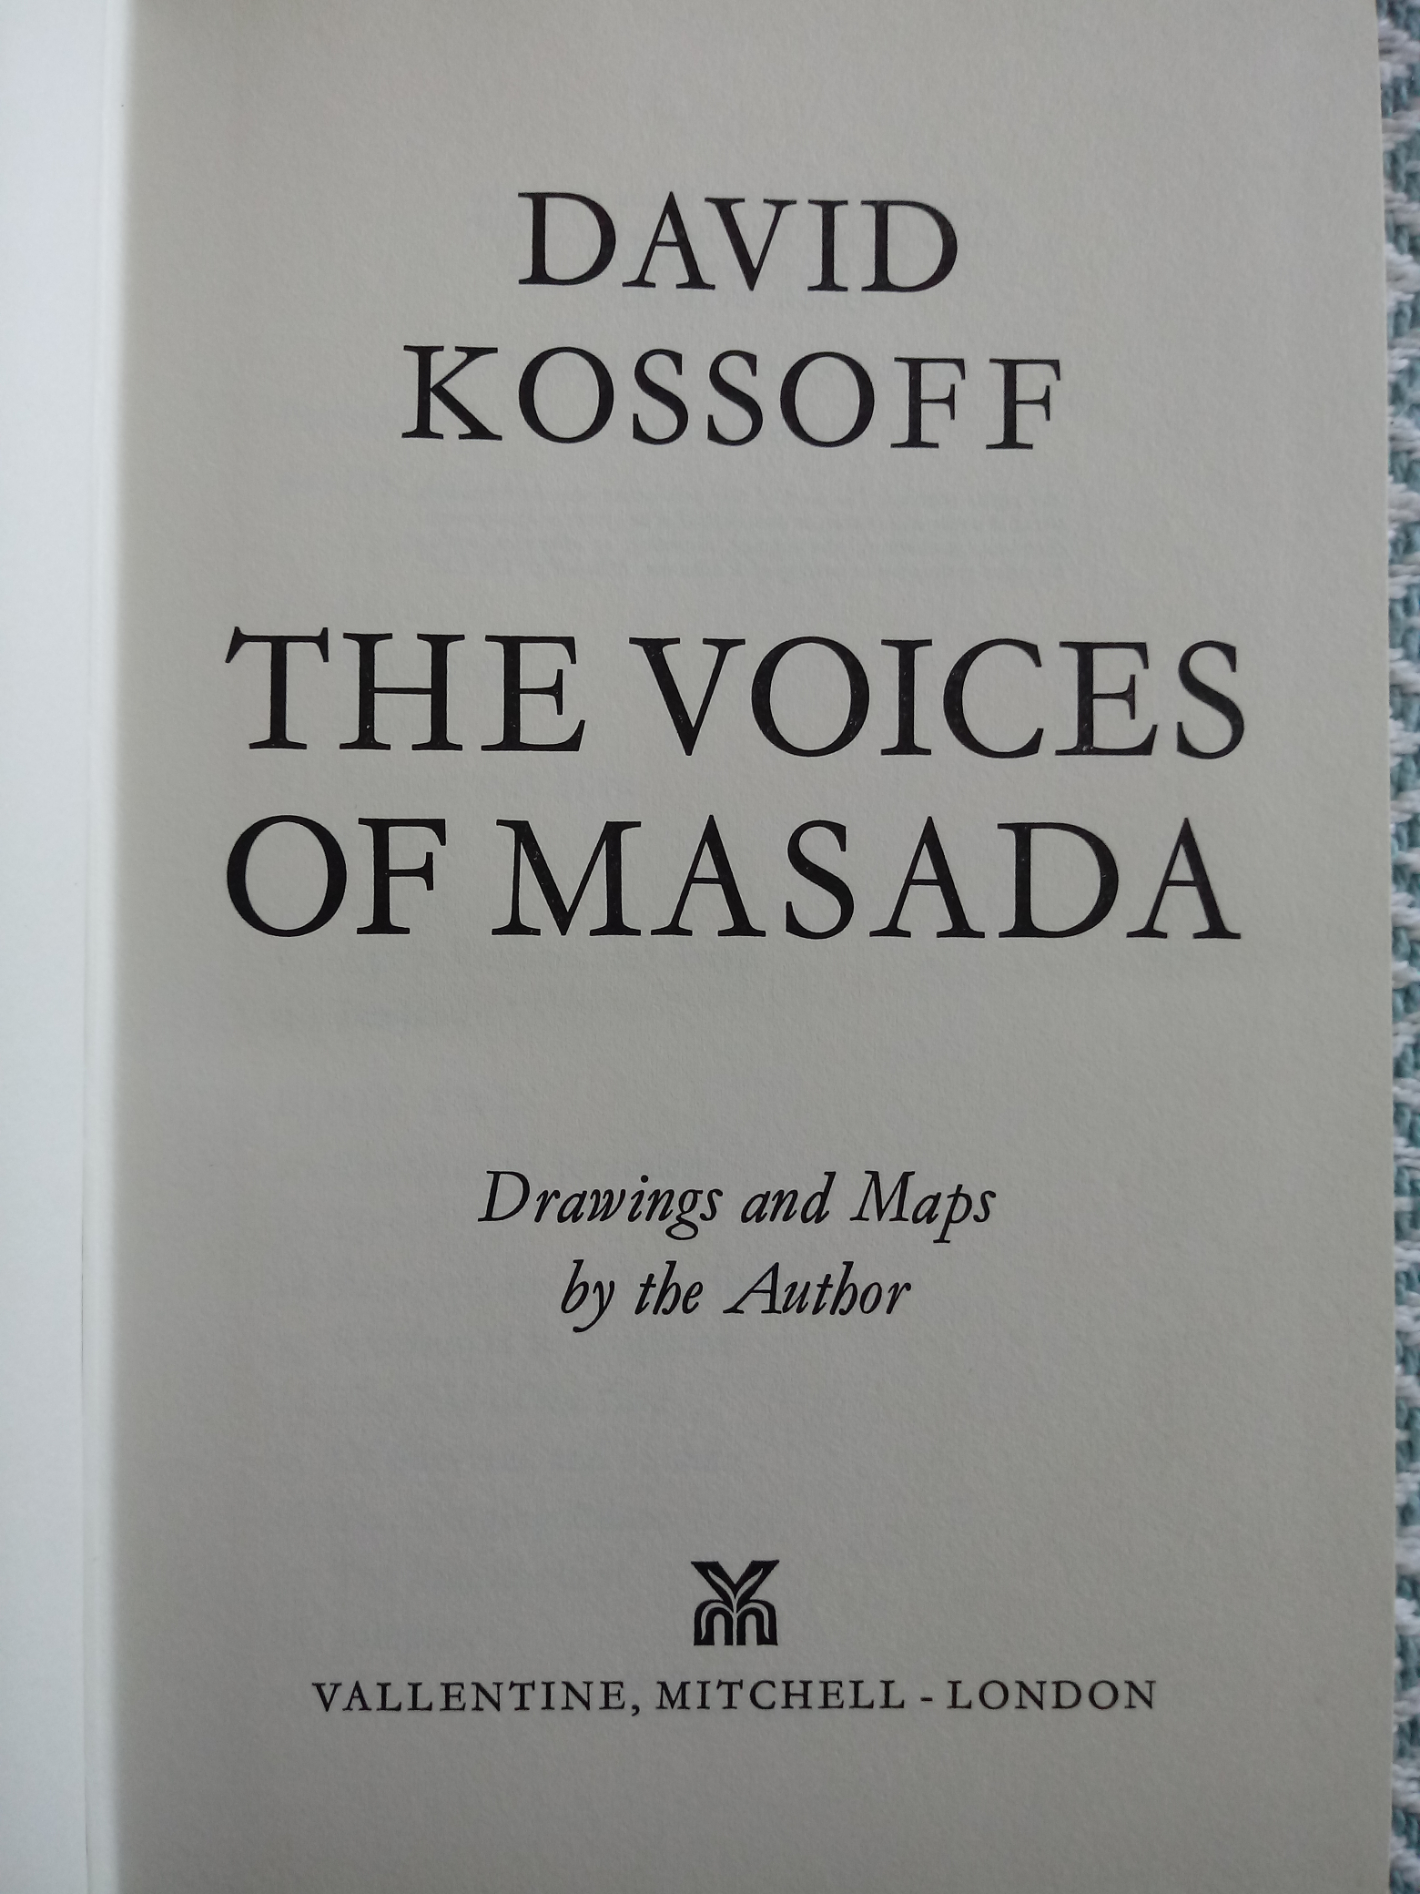 The Voices Of Masada by David Kossoff hardback book 236 pages Published 1973 Valentine Mitchell ISBN - Image 3 of 4